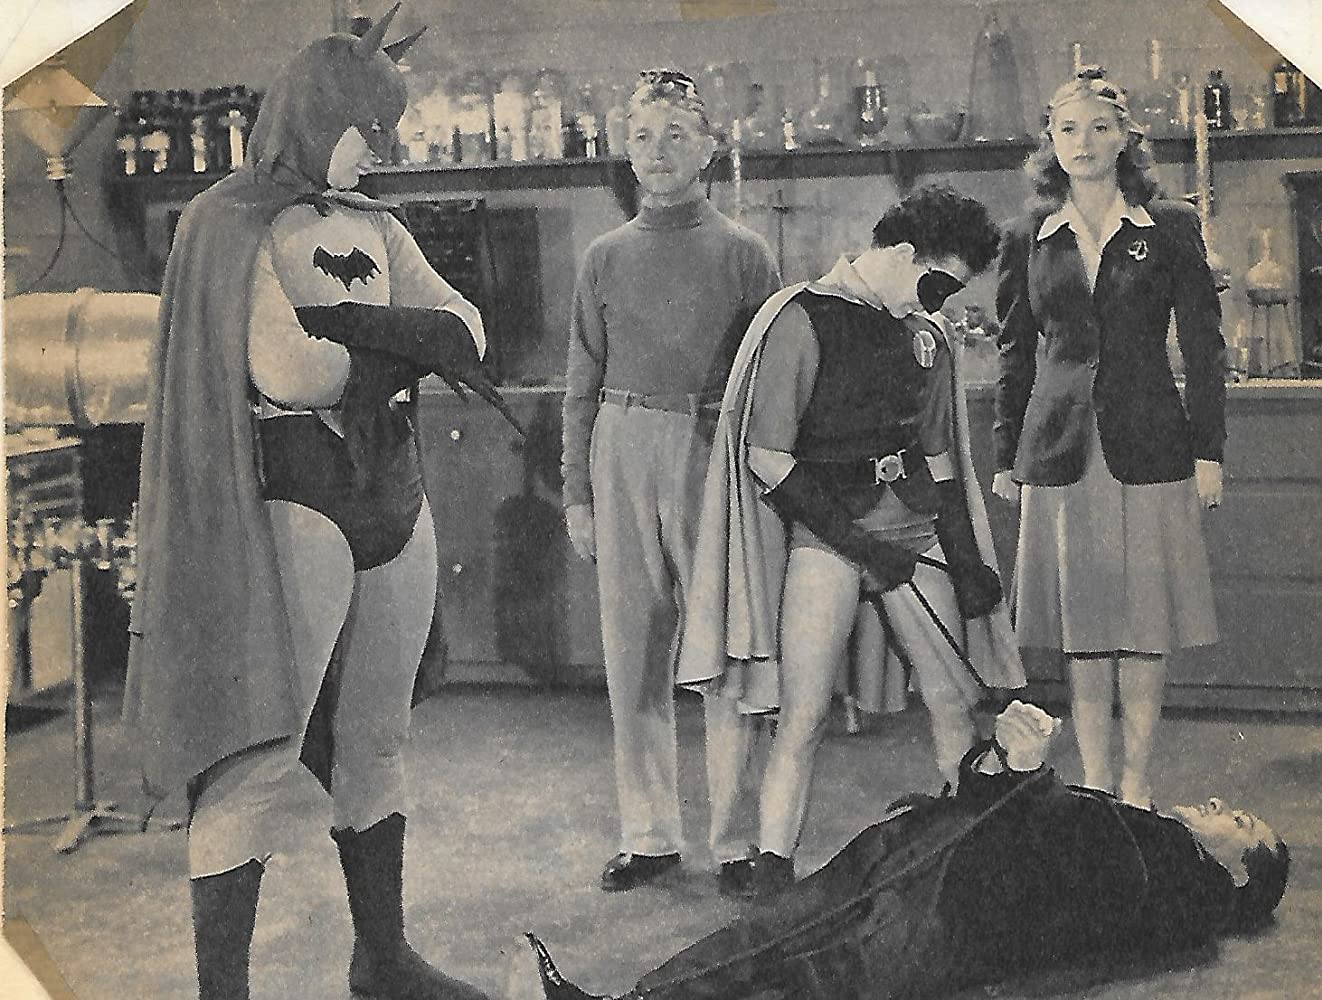 William Austin, Douglas Croft, Shirley Patterson, and Lewis Wilson in Batman (1943)